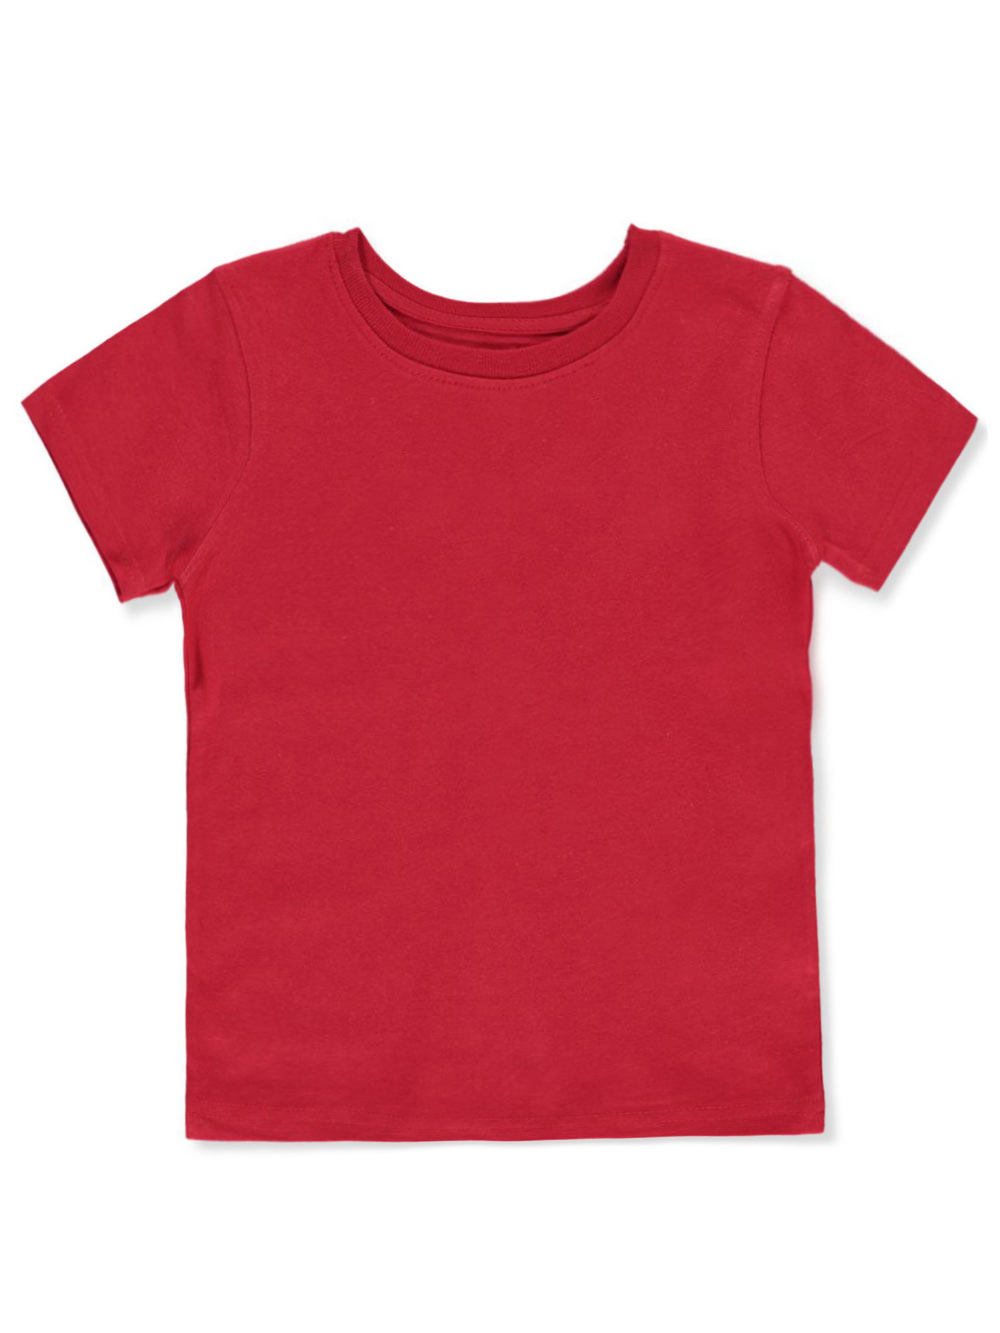 Boys' Basic Crew Neck T-Shirt